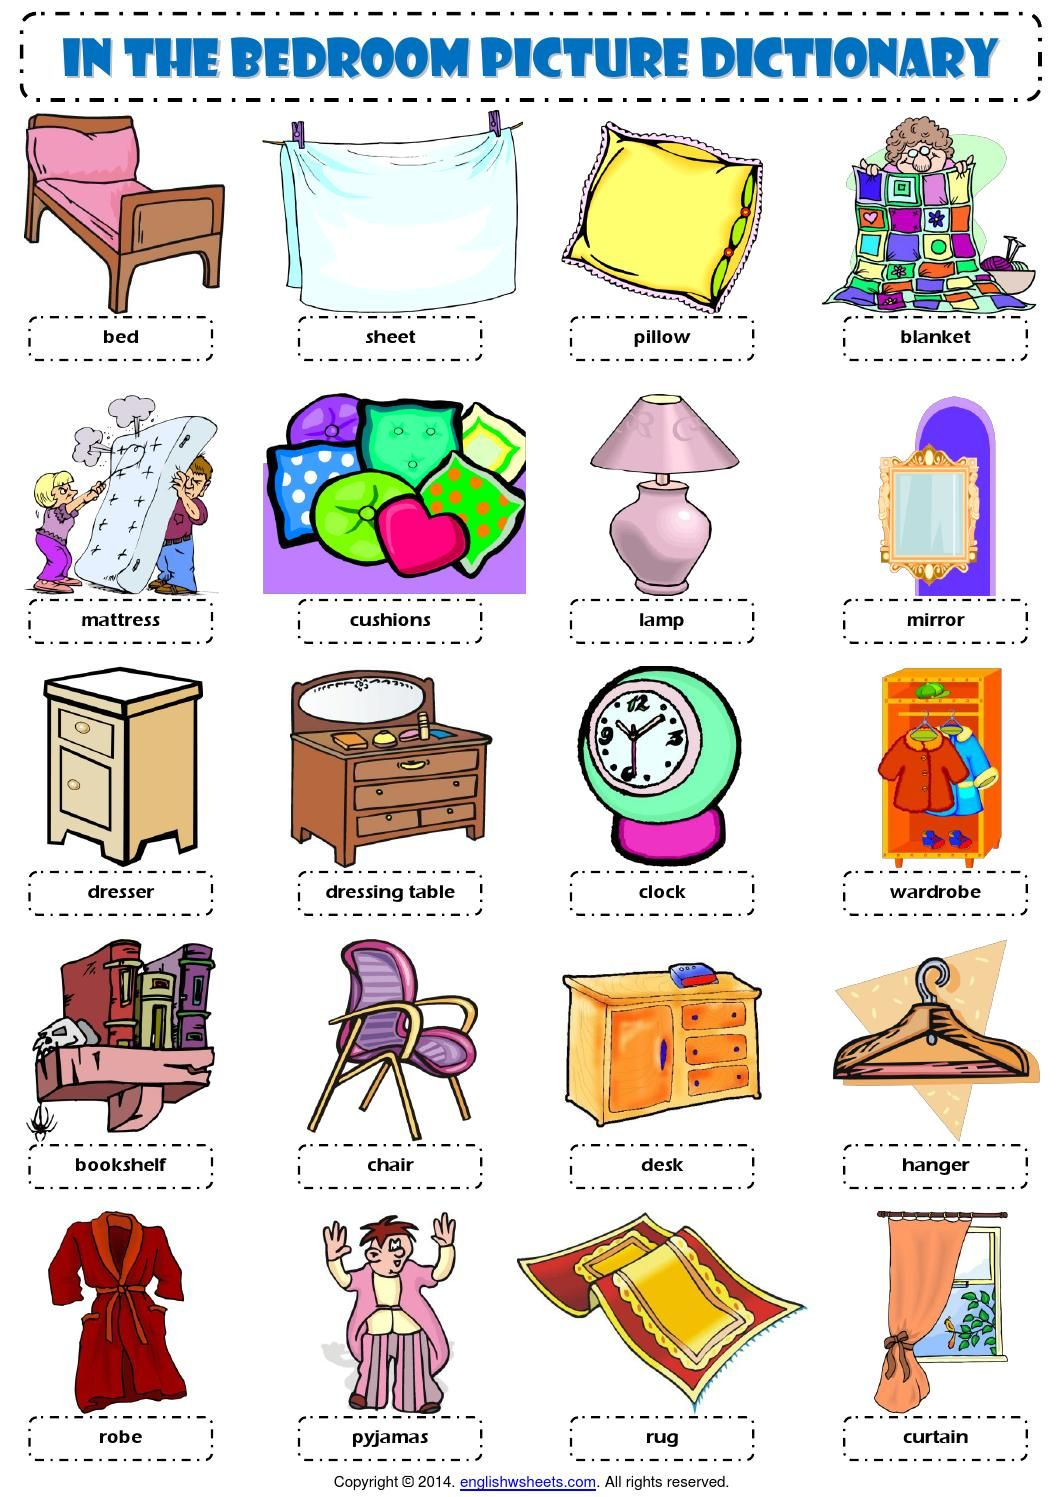 Muebles De Bedroom En Ingles - English Vocabulary In The Bedroom By Educaci N Kitchen_furniture [mjhdah]http://galeriamuebles.com/wp-content/uploads/2016/01/Rebajas-verano-2016-El-Corte-Ingl%C3%A9s-dormitorios.jpg